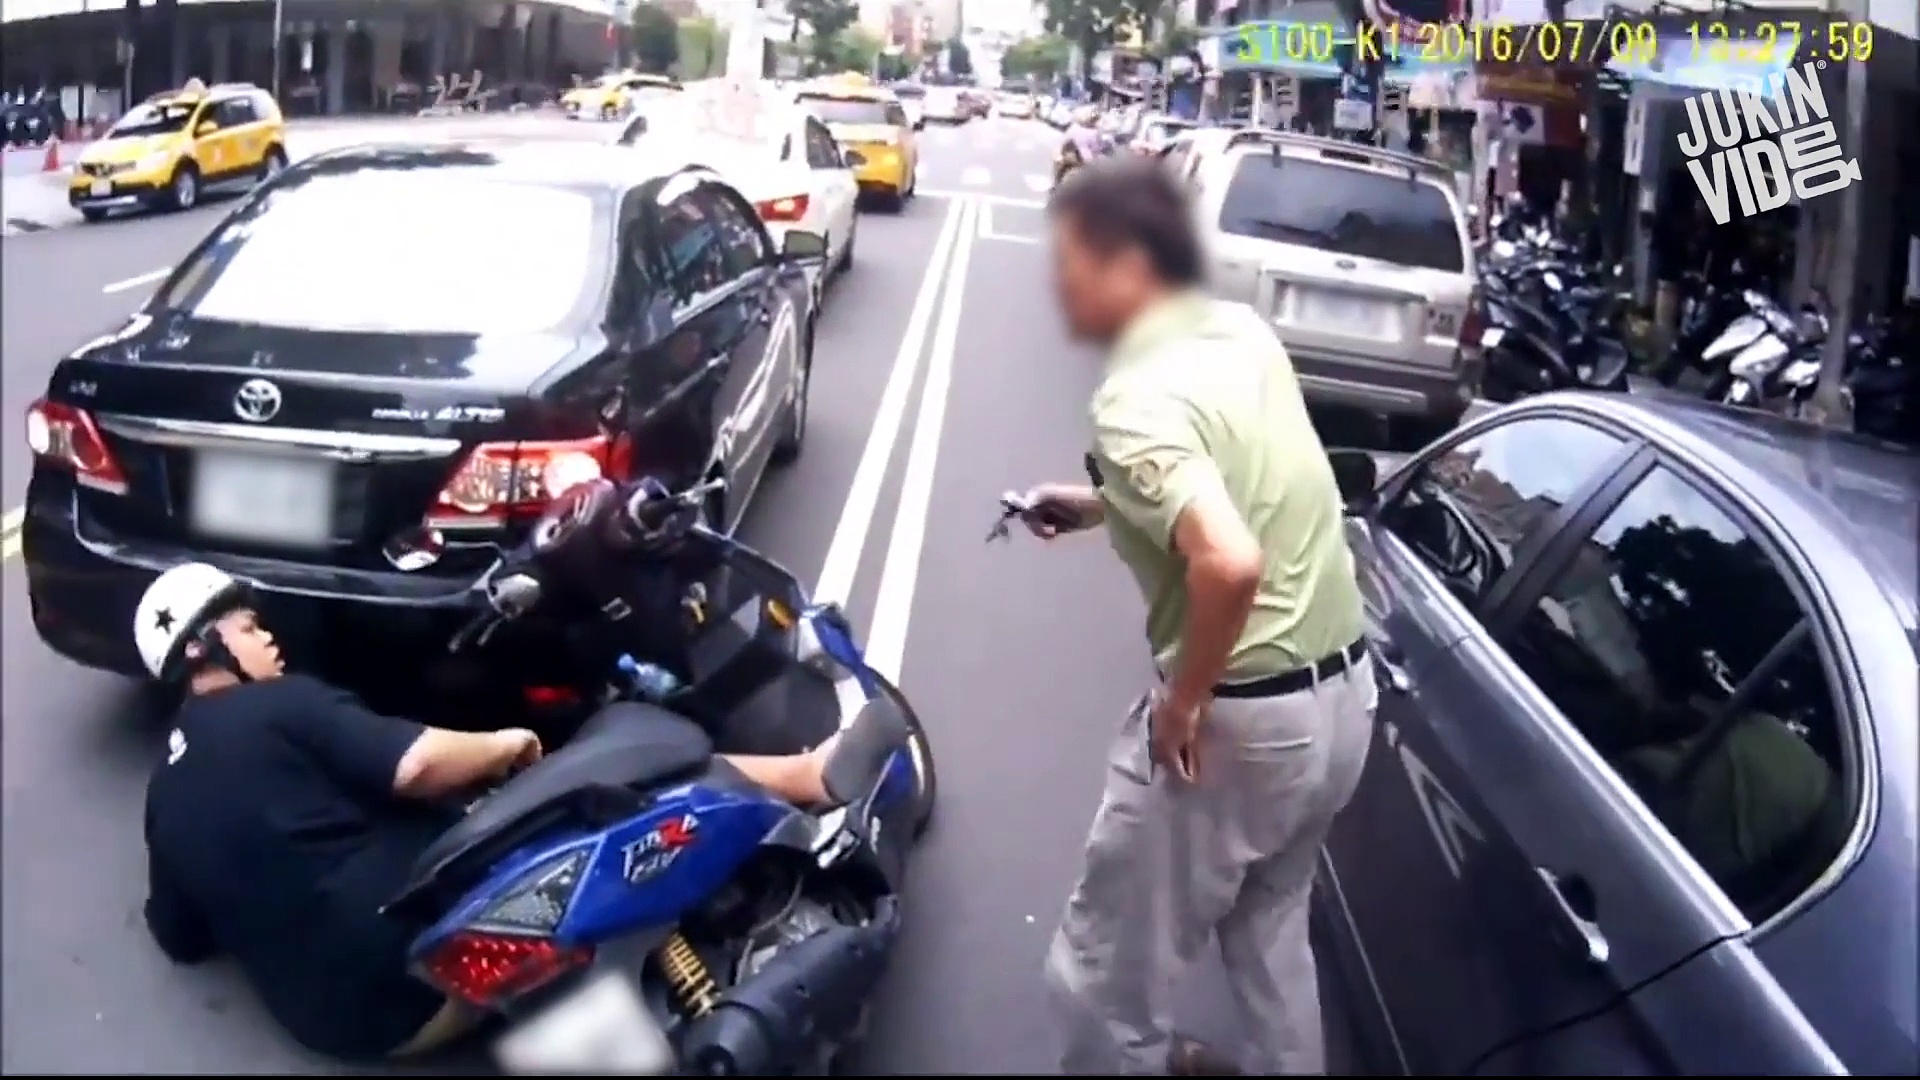 Driver Struggles With Scooter – Trouble Scooter